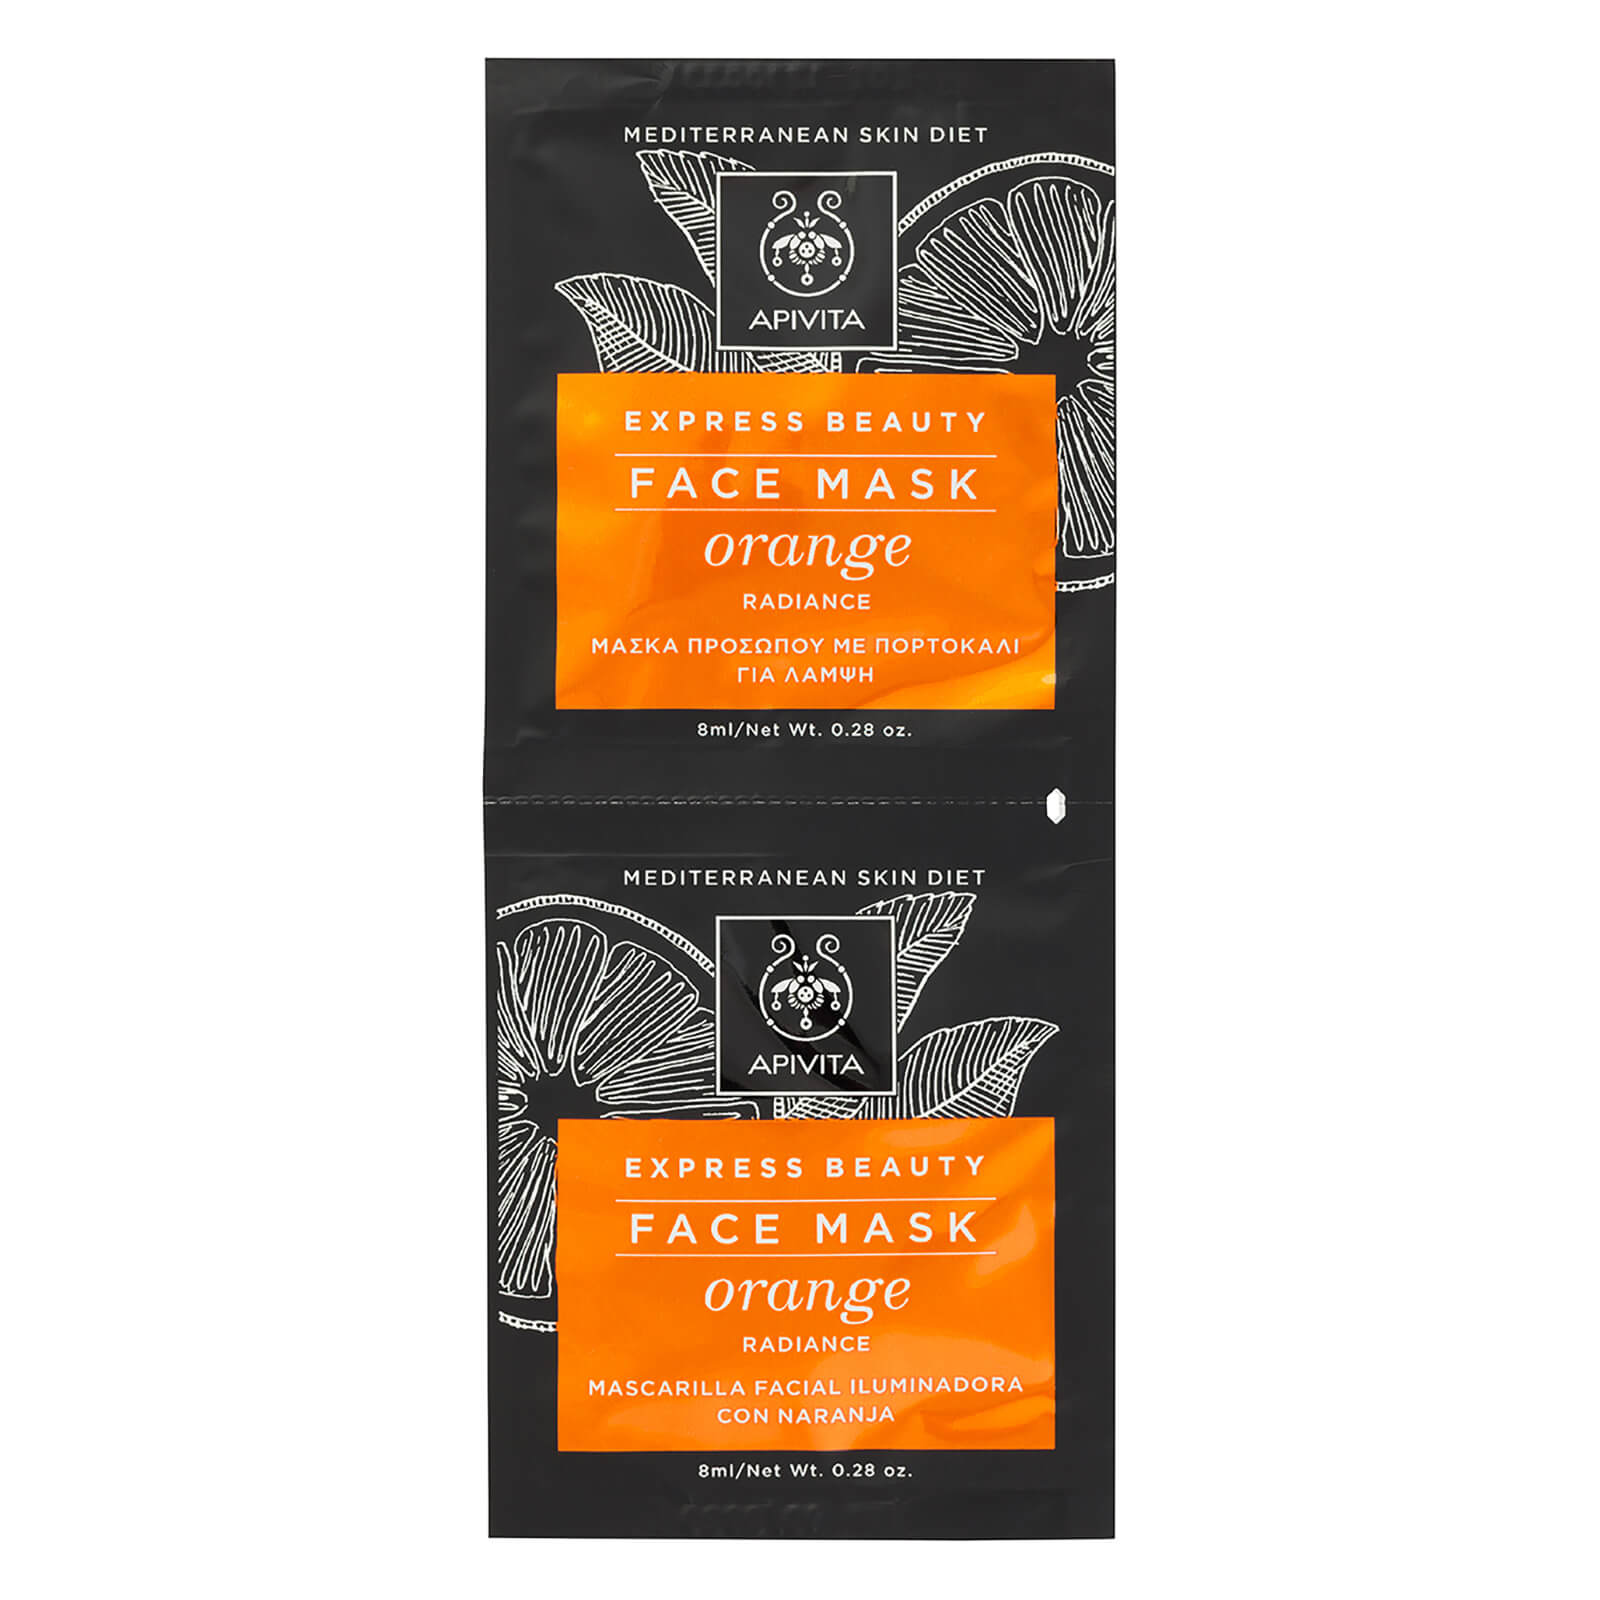 APIVITA Express Radiance Face Mask - Orange 2x8ml